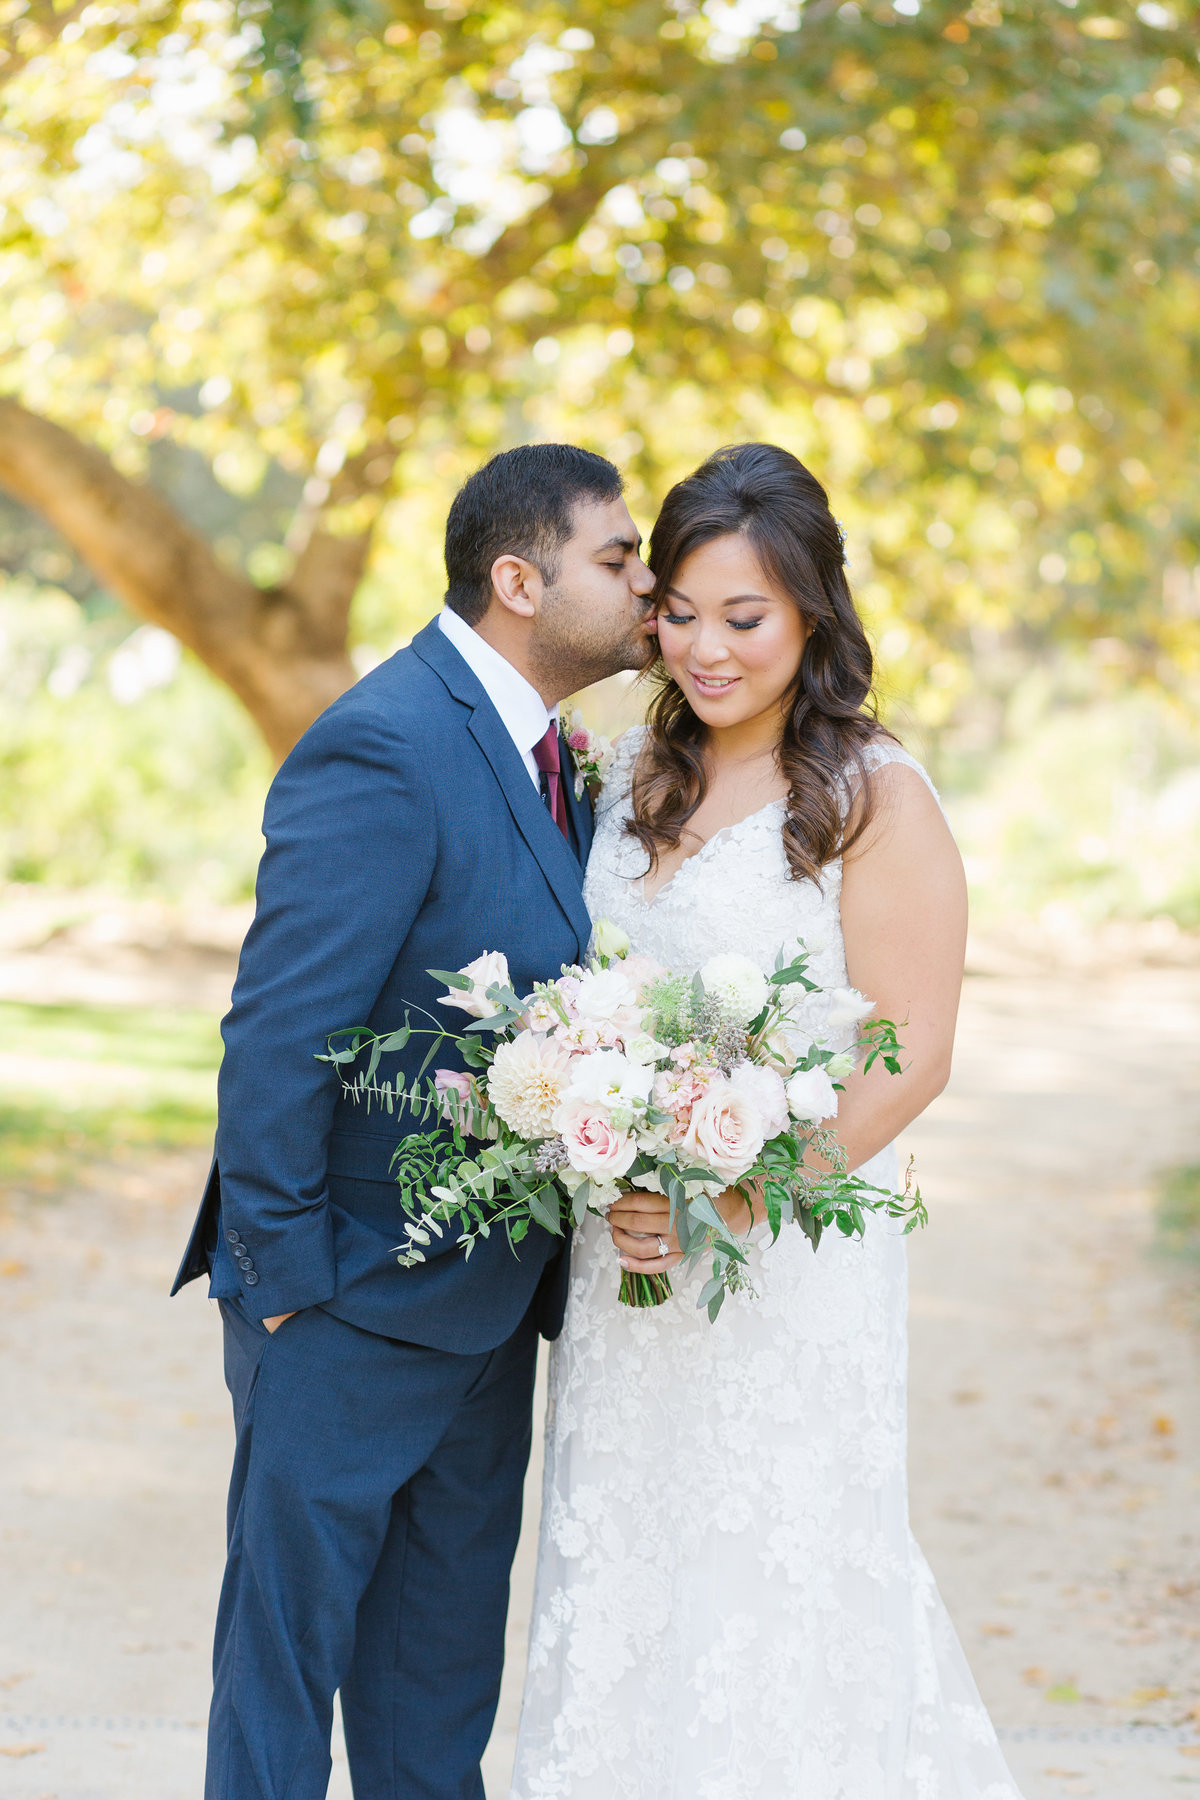 descanso-gardens-fall-wedding-photos-15